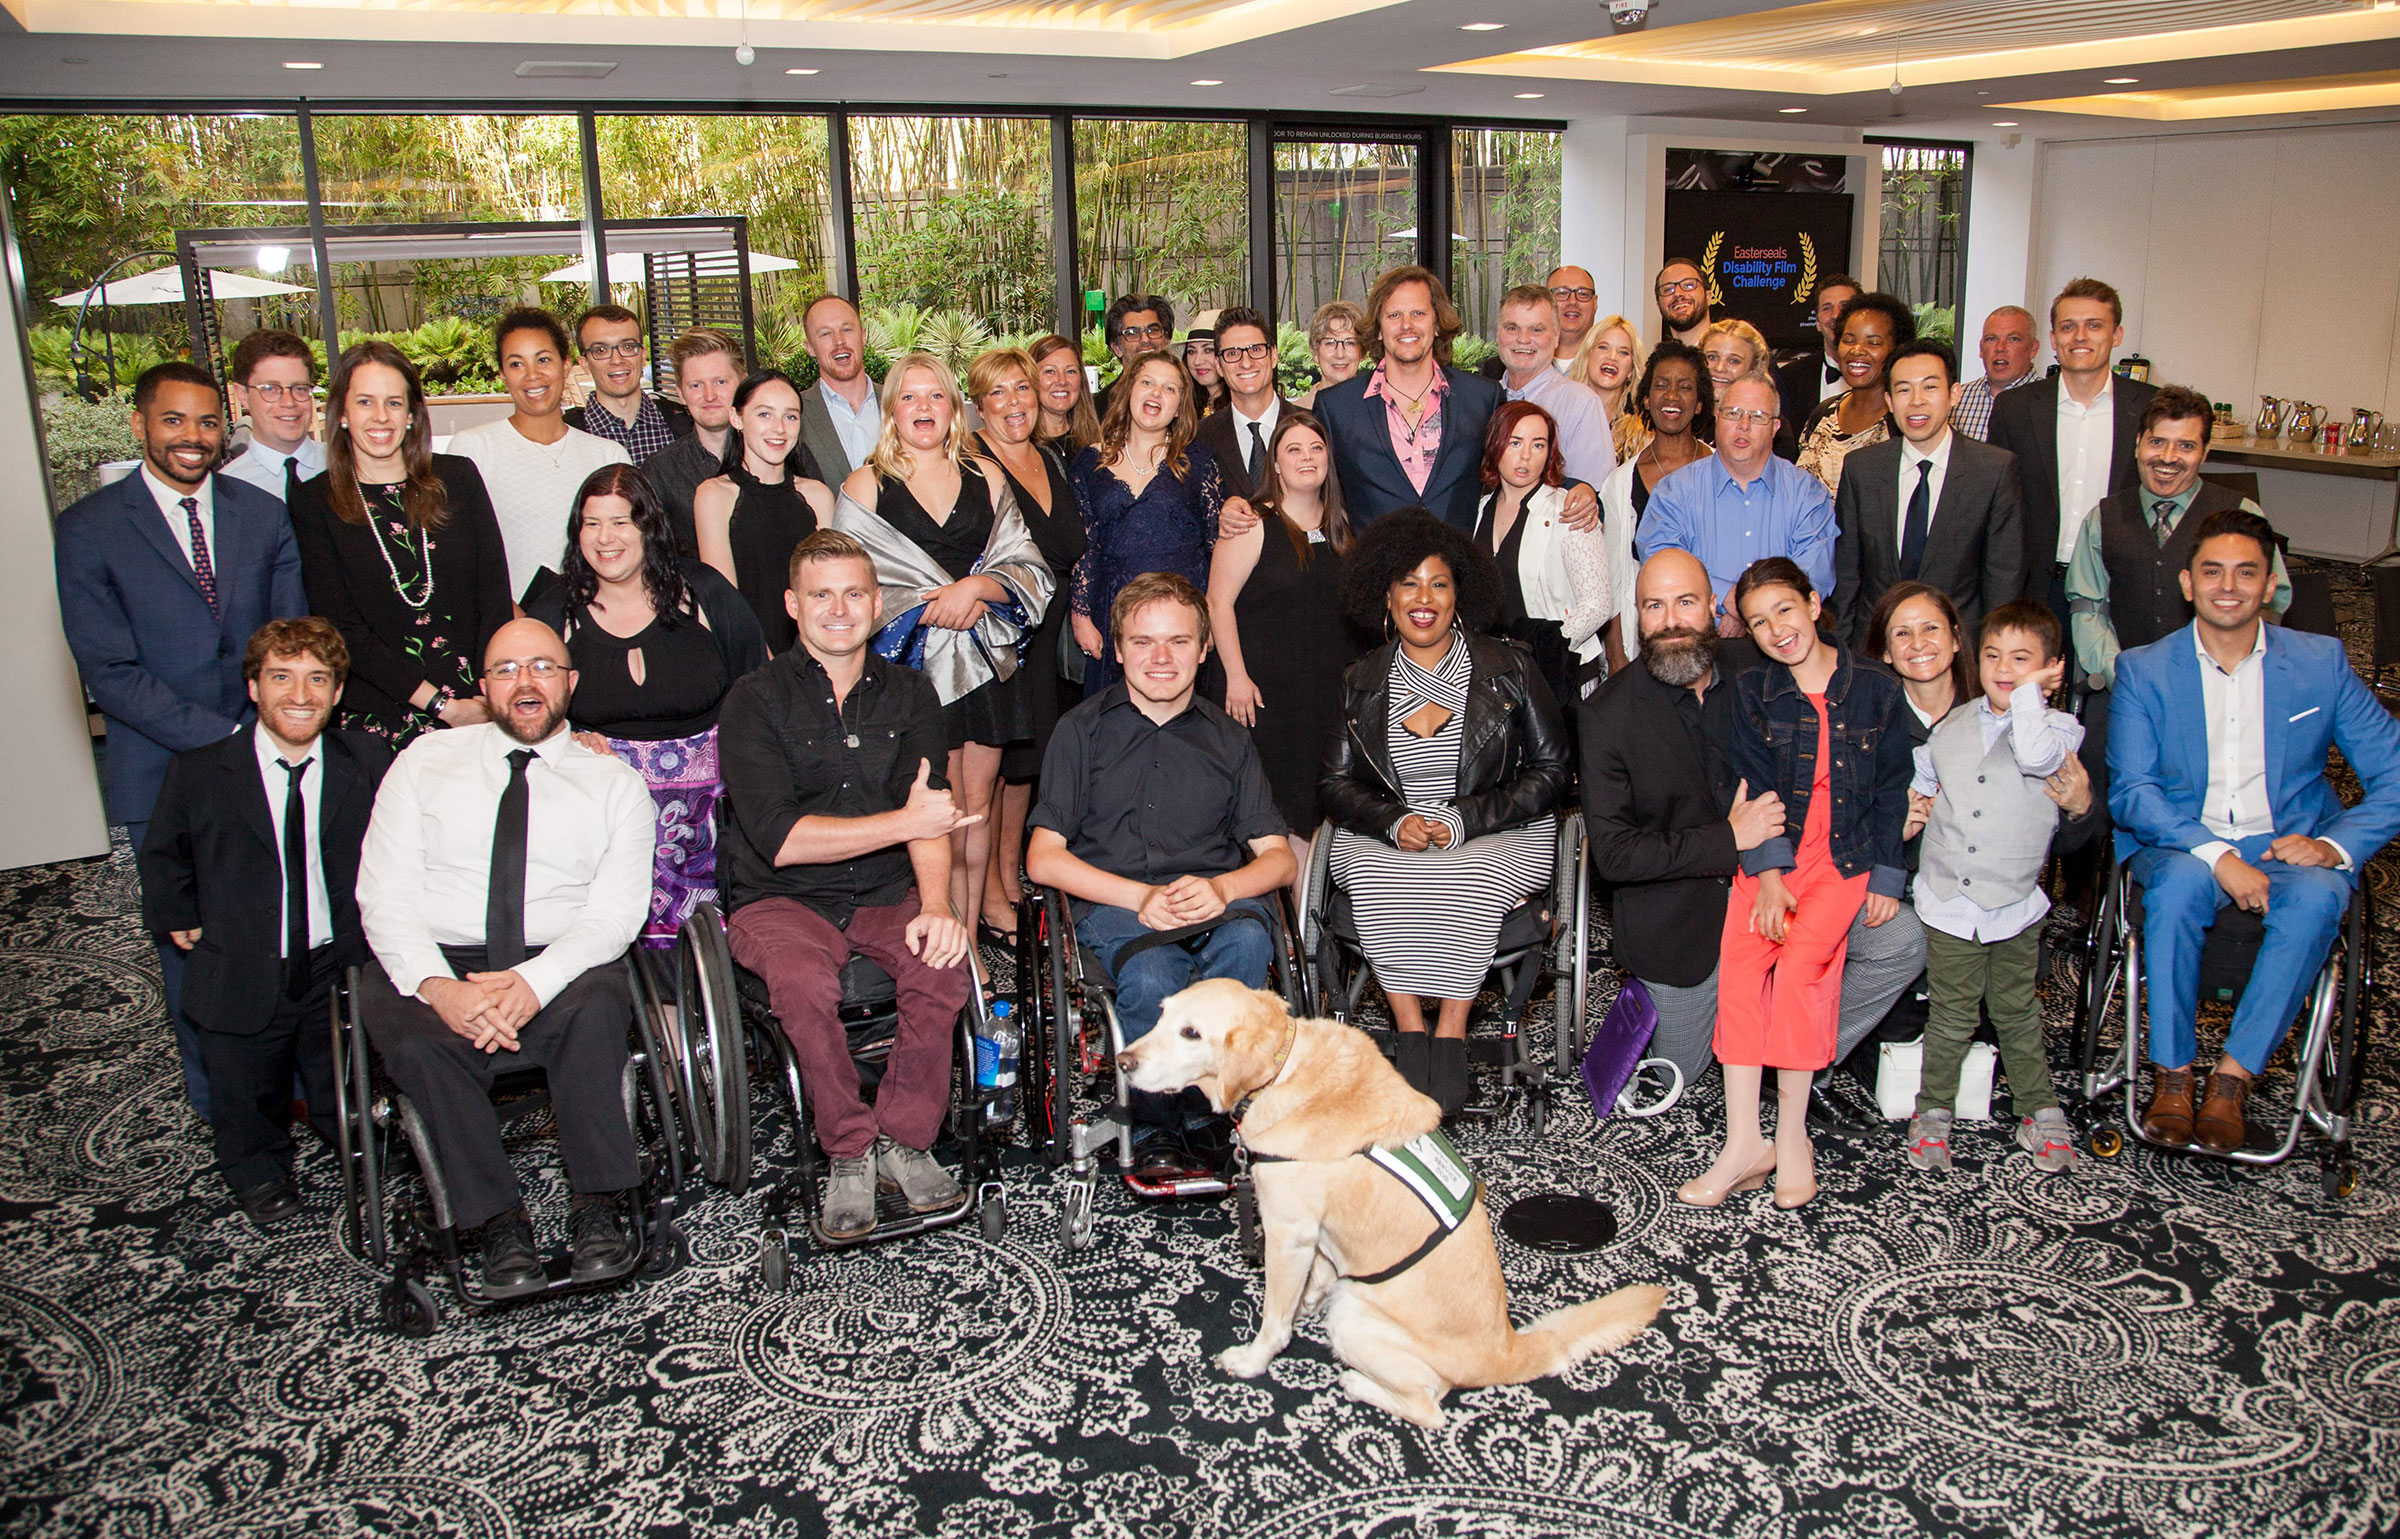 Group photo of participants in the Disability Film Challenge